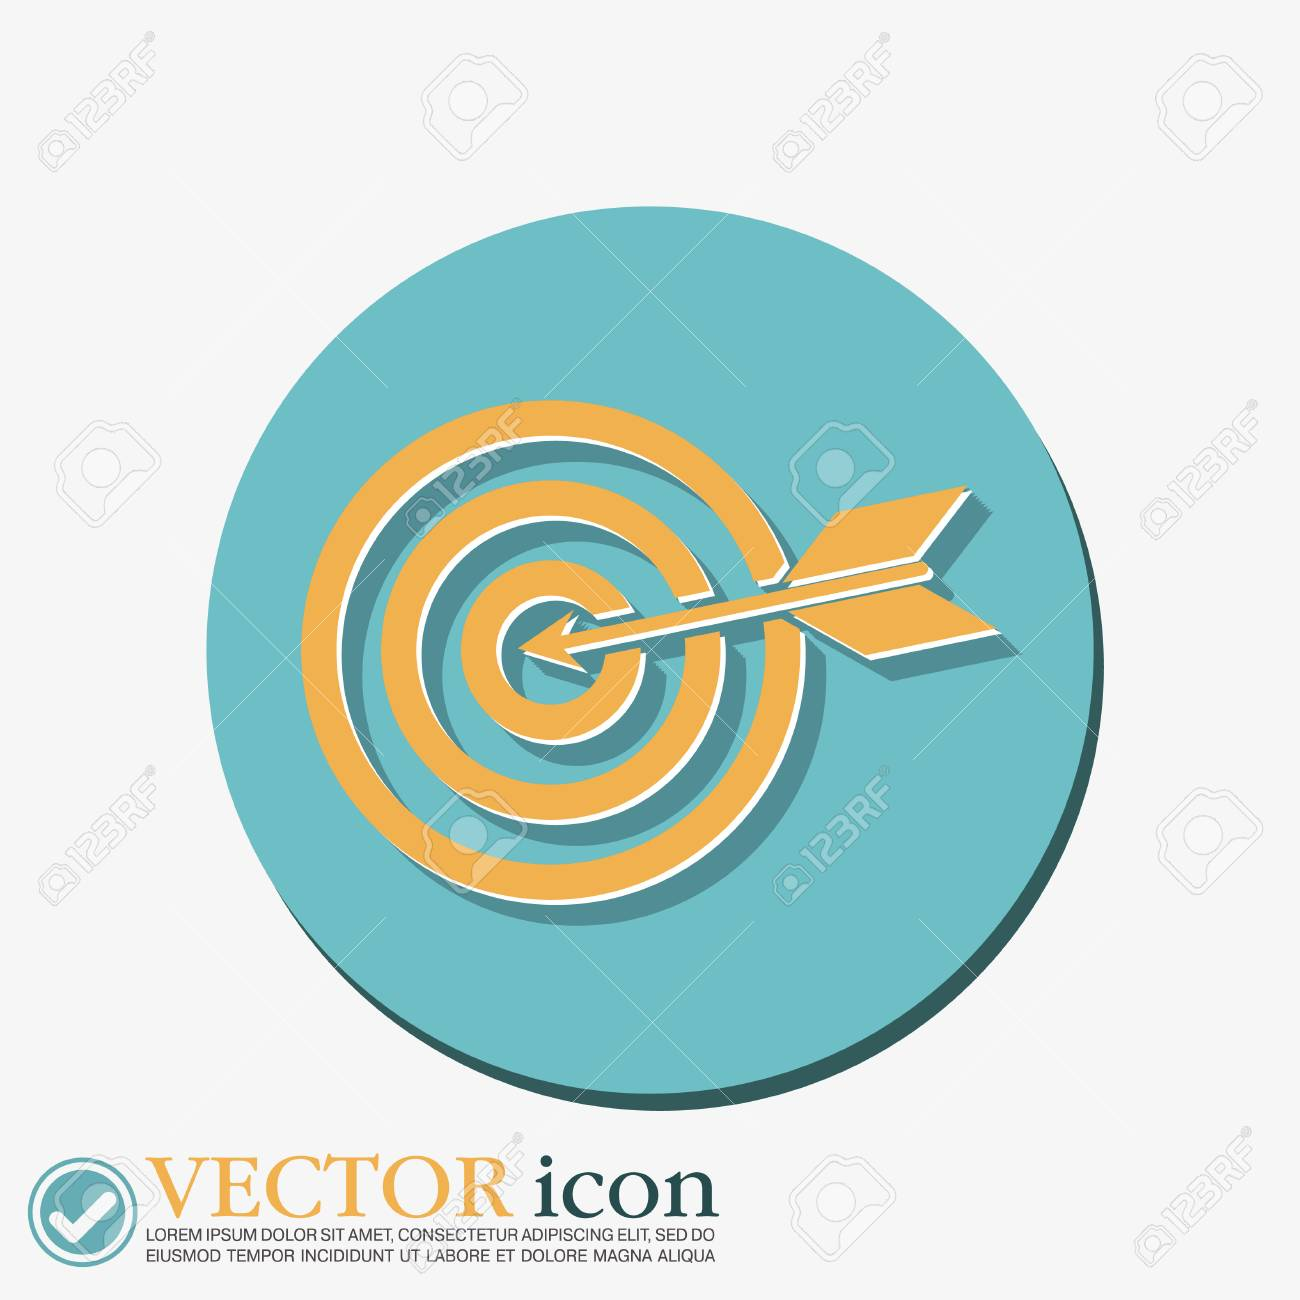 Target symbol sporty character hit the target royalty free target symbol sporty character hit the target stock vector 44037766 buycottarizona Image collections